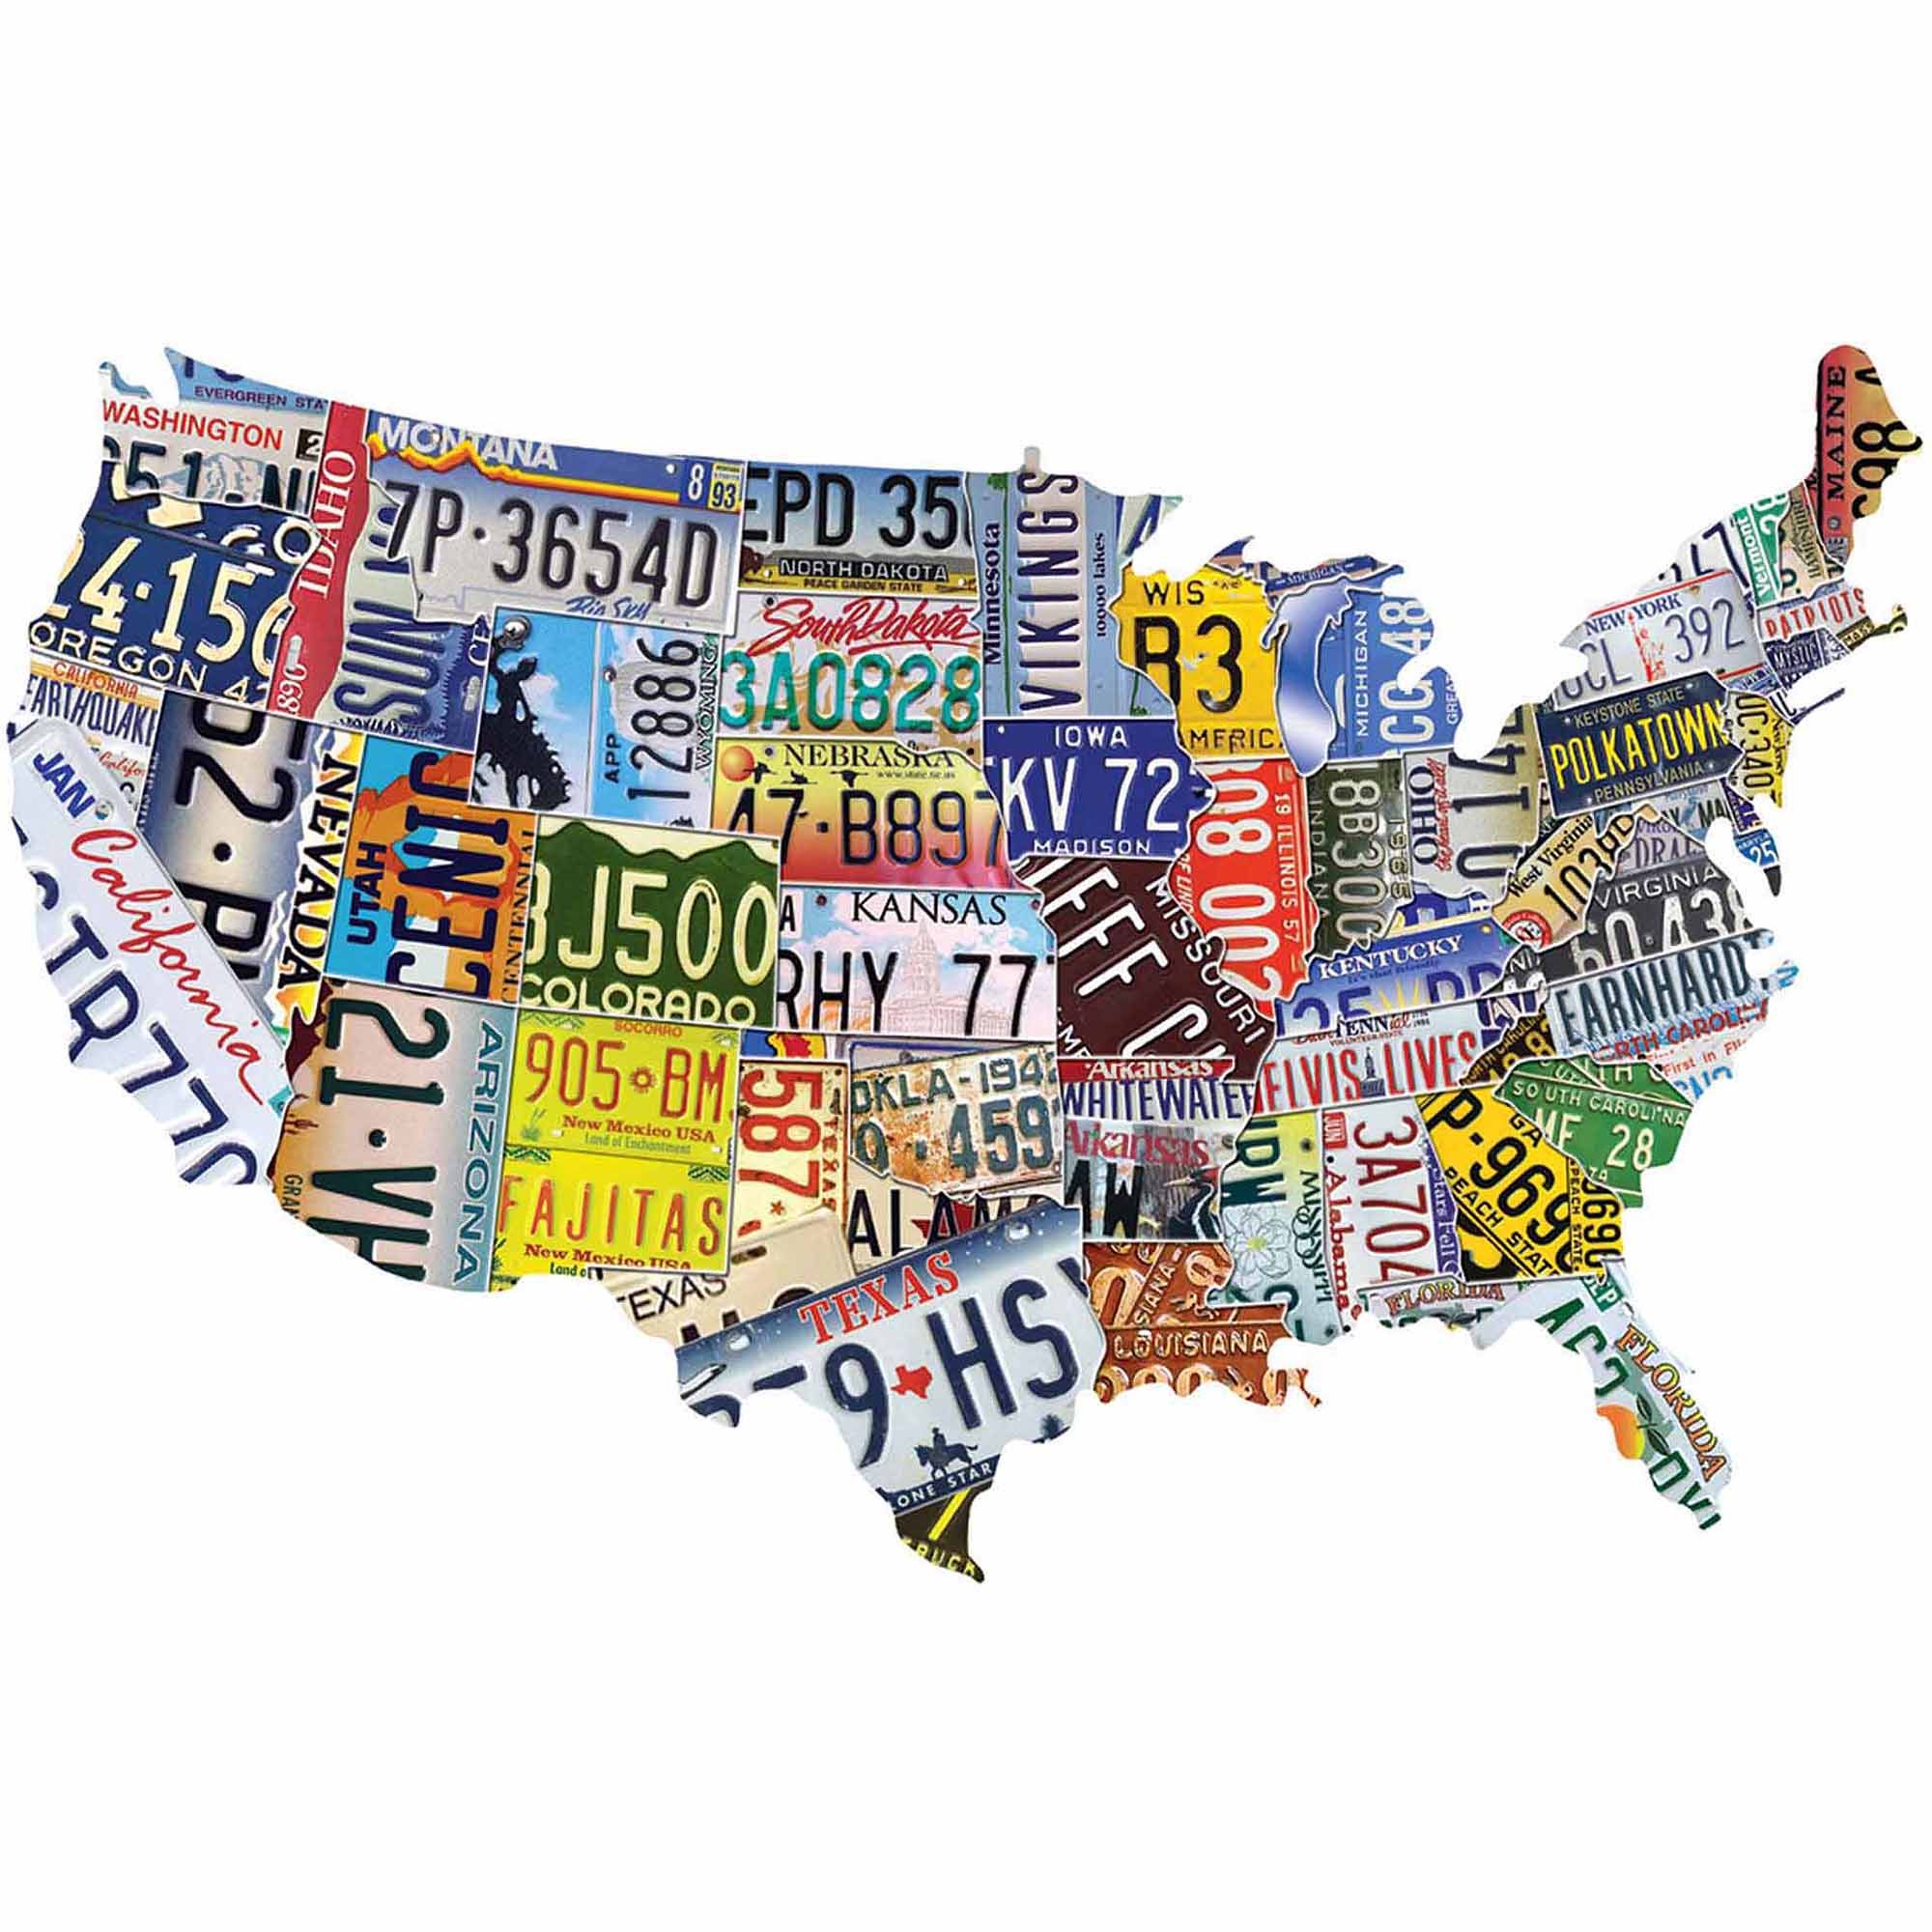 U.S.A. Shaped Puzzles, License Plates